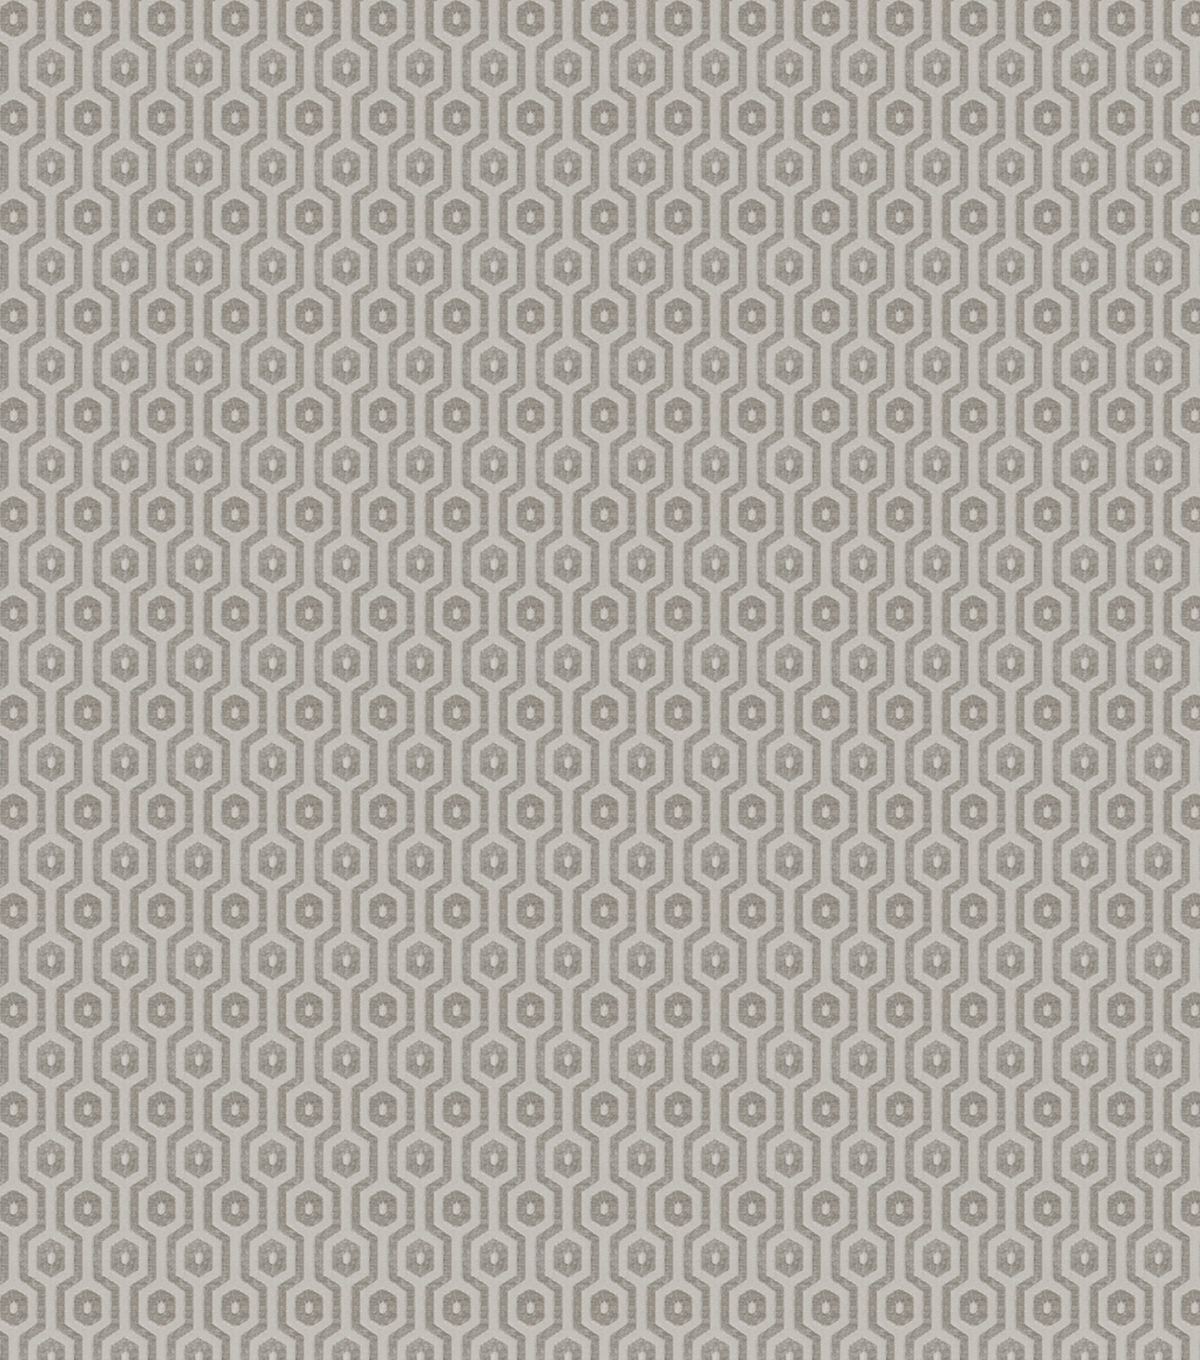 Eaton Square Multi-Purpose Decor Fabric 56\u0022-Braided/Grey